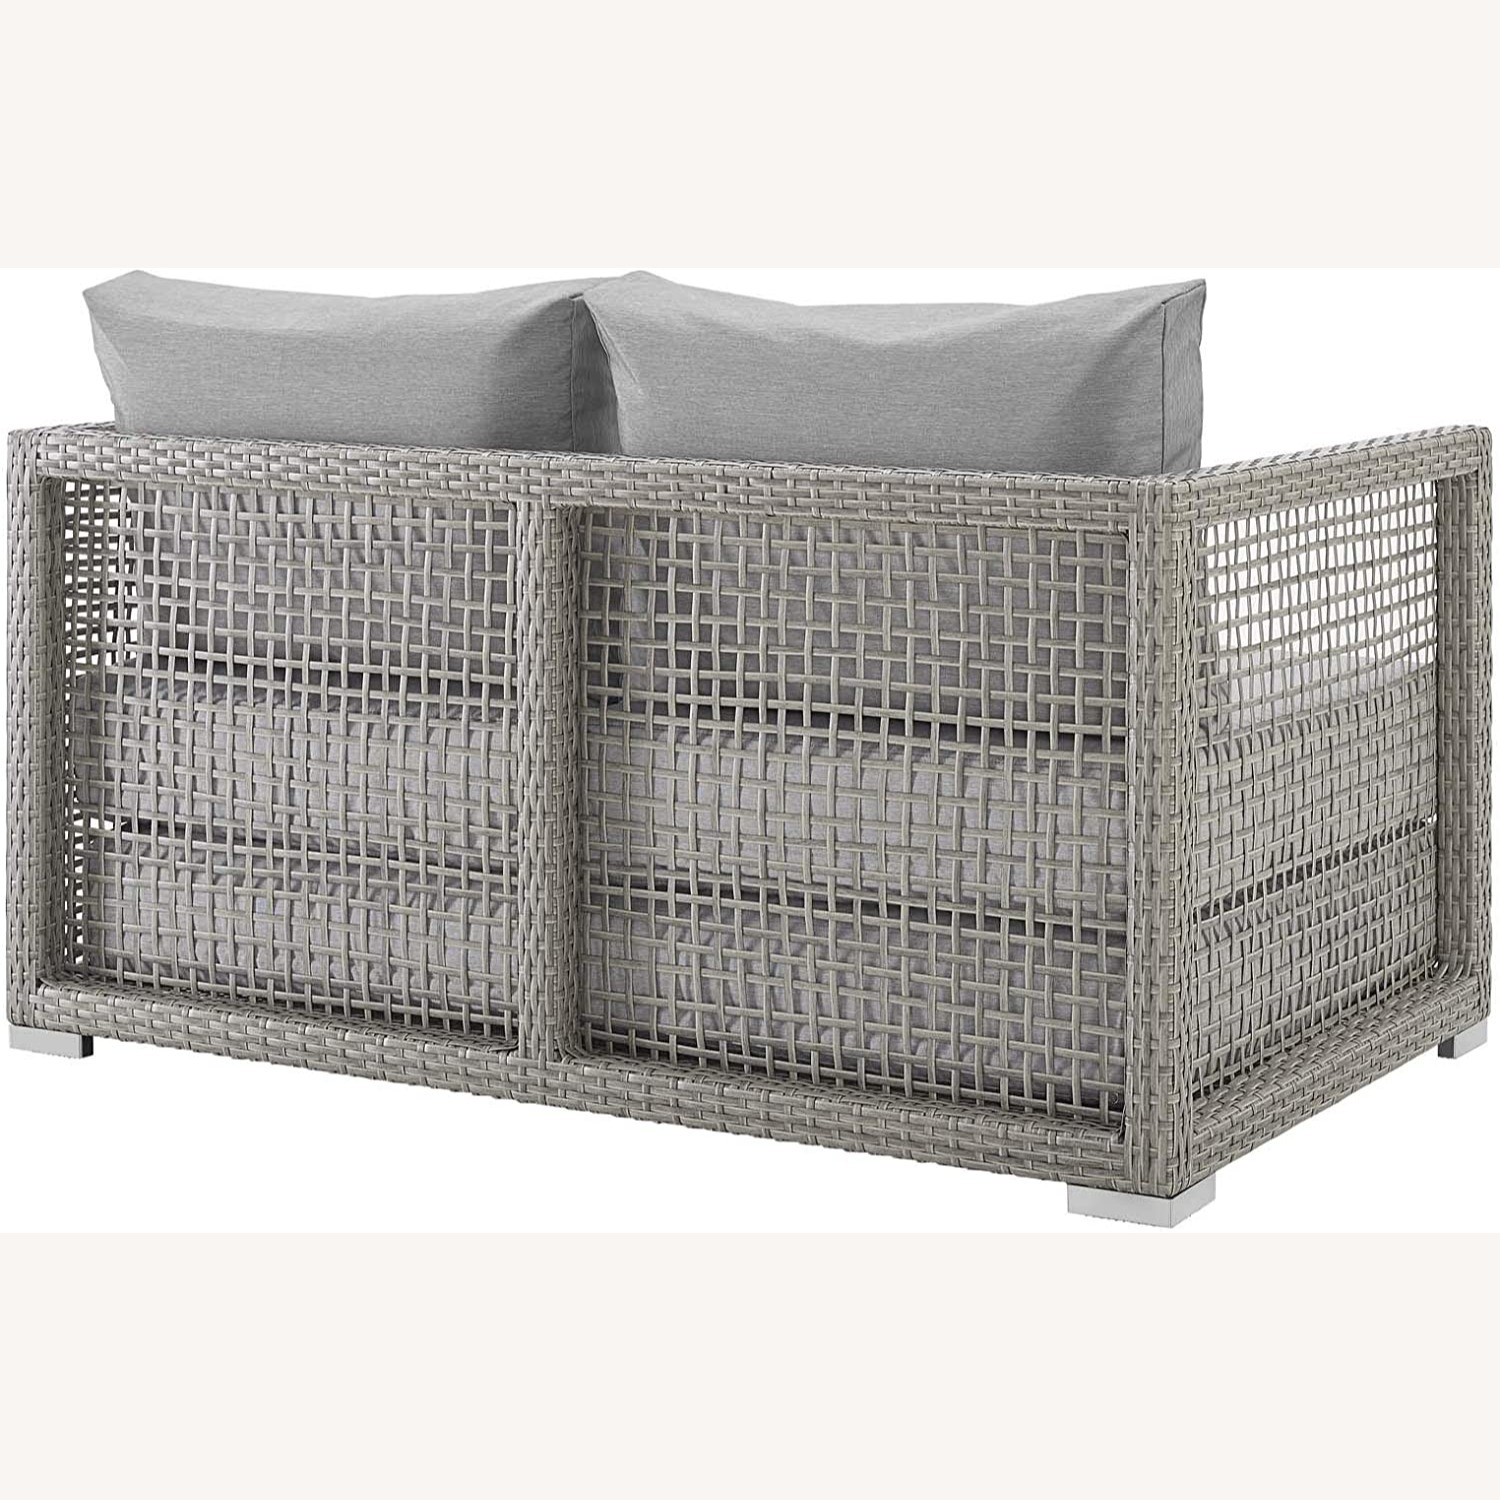 Outdoor Loveseat In Gray Rattan Weave Frame - image-2